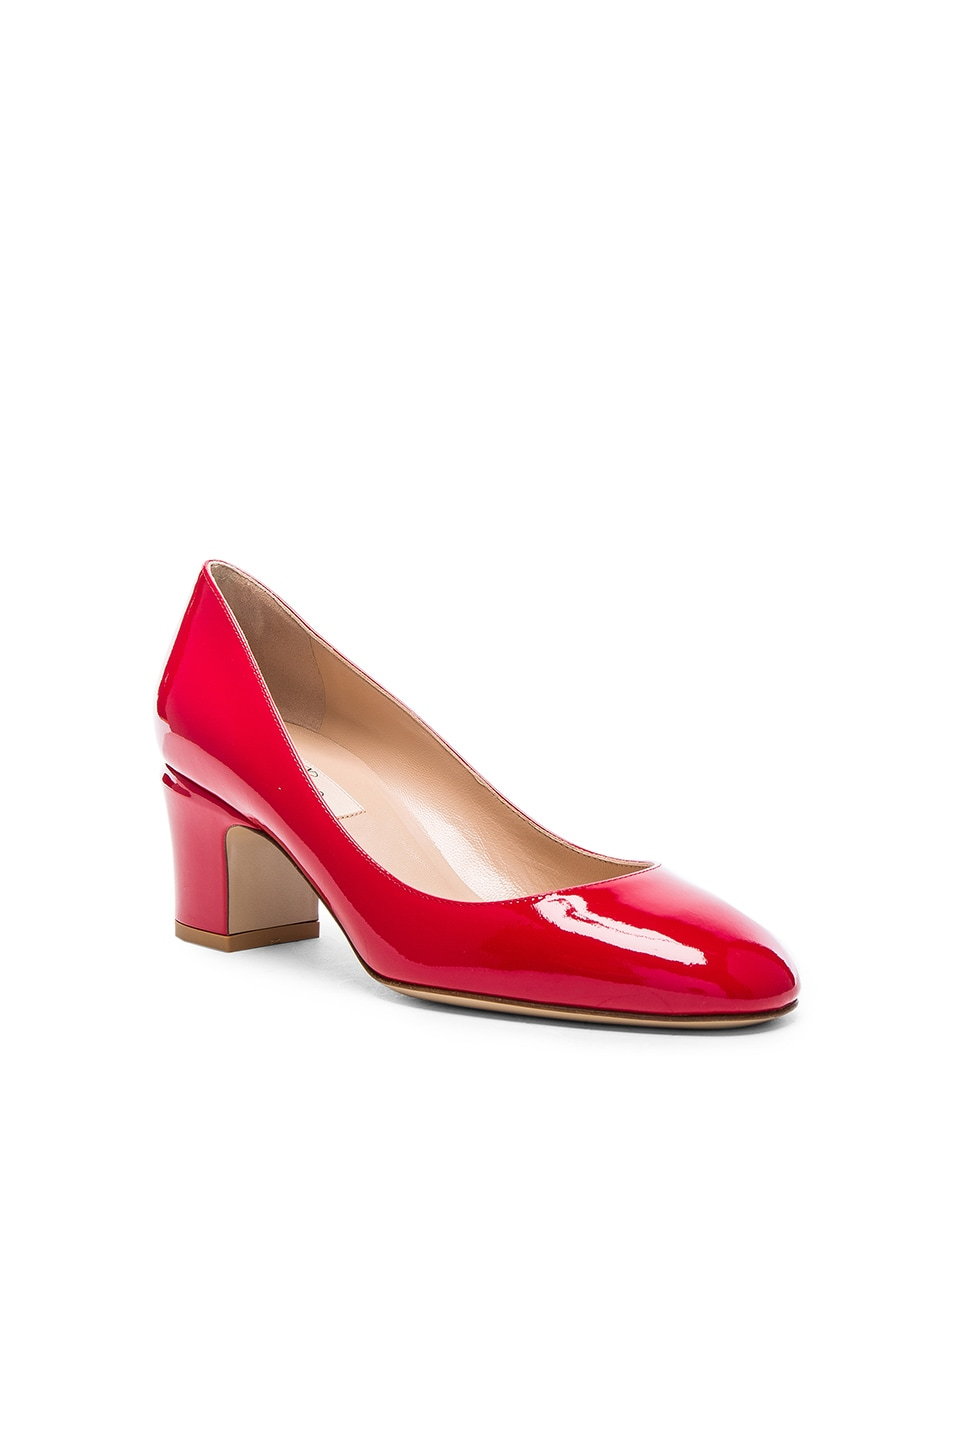 Image 2 of Valentino Patent Leather Tan-Go Pumps in Red